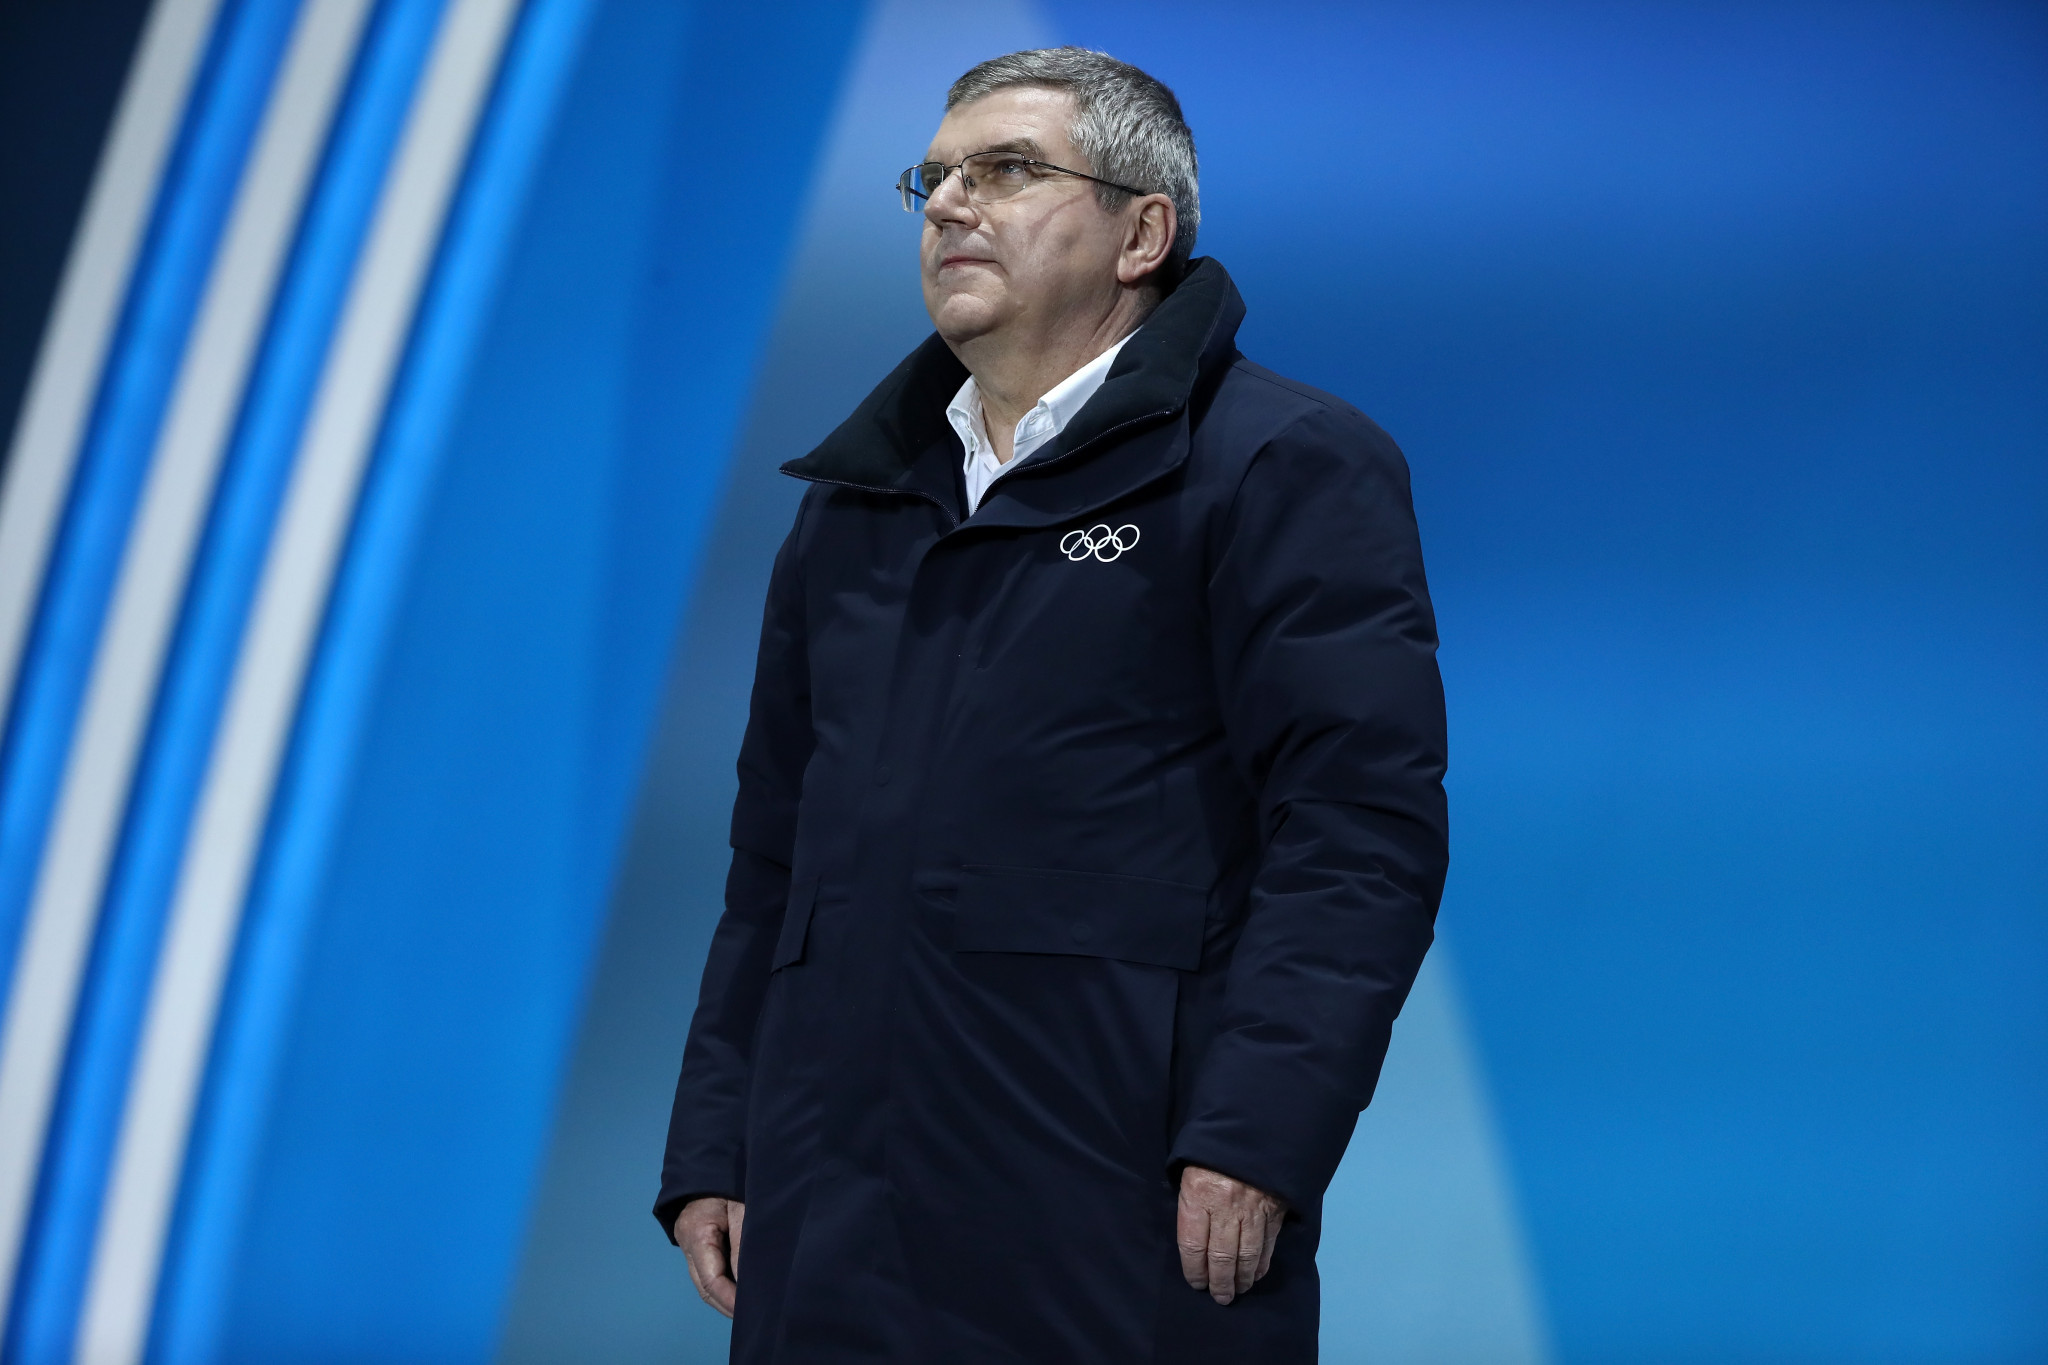 IOC President Thomas Bach has not yet addressed the Adam Pengilly situation directly ©Getty Images